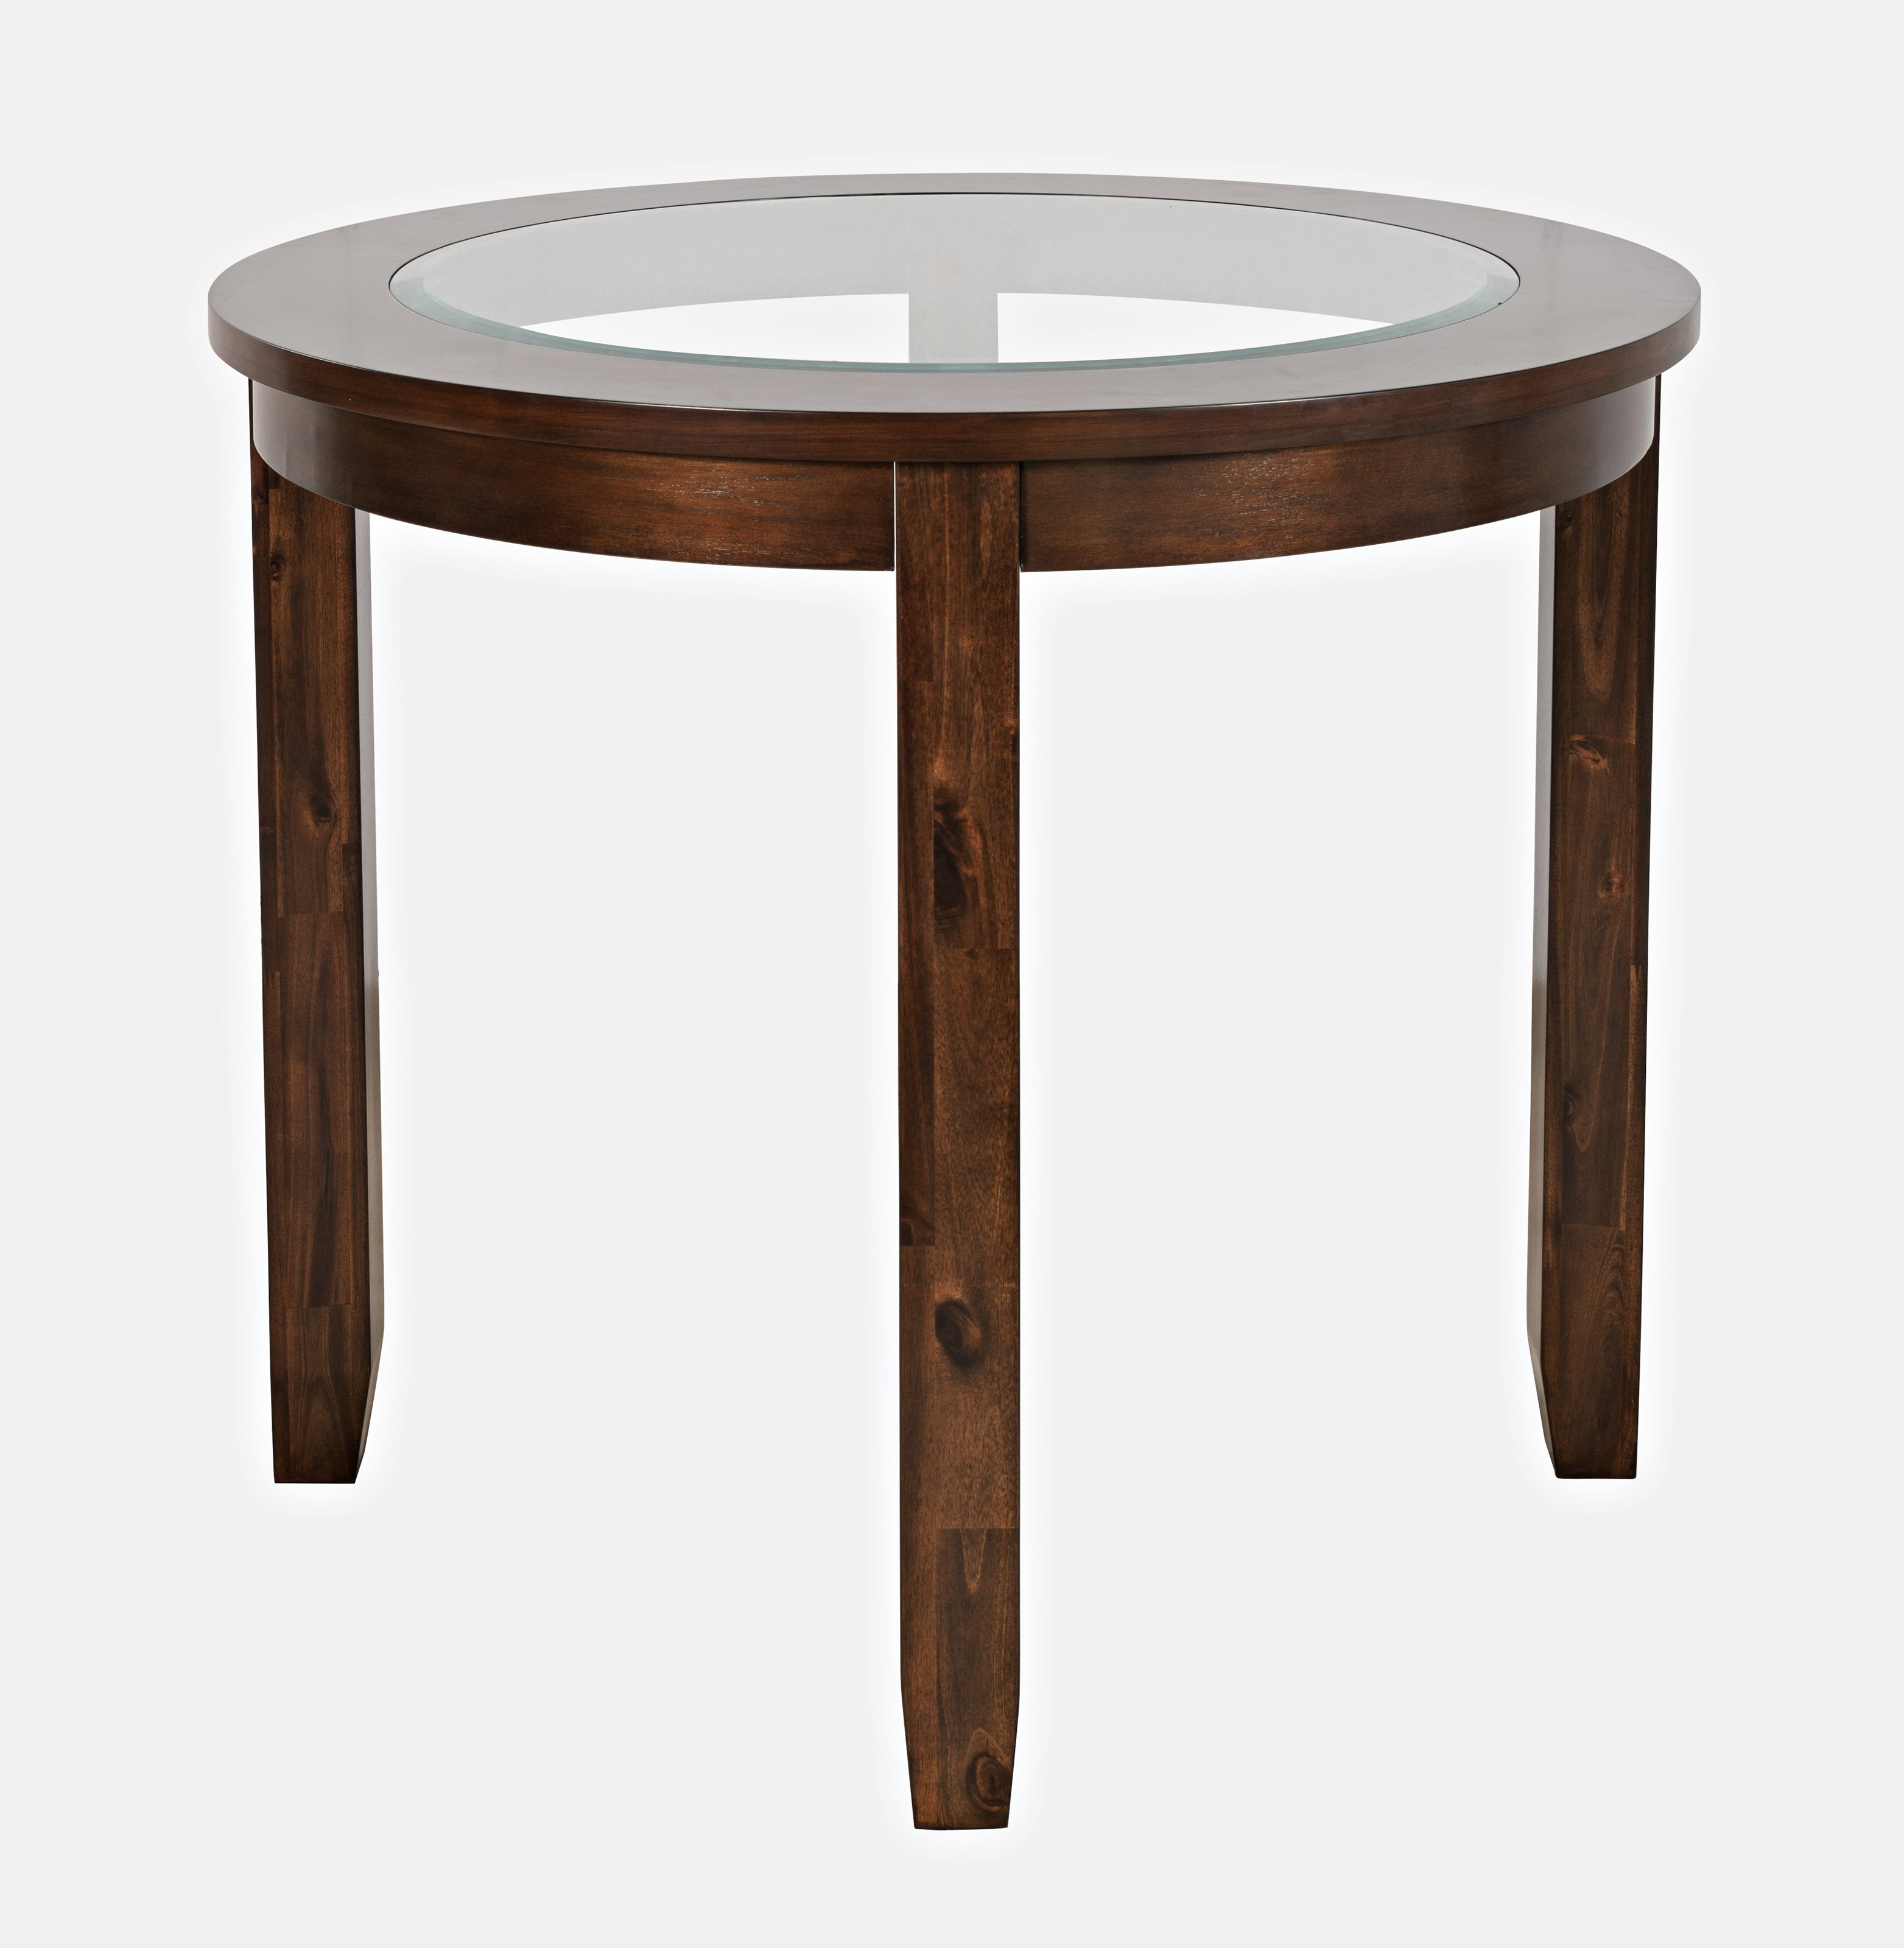 "Urban Icon 42"" Round Counter Height Dining Table by Jofran at Jofran"